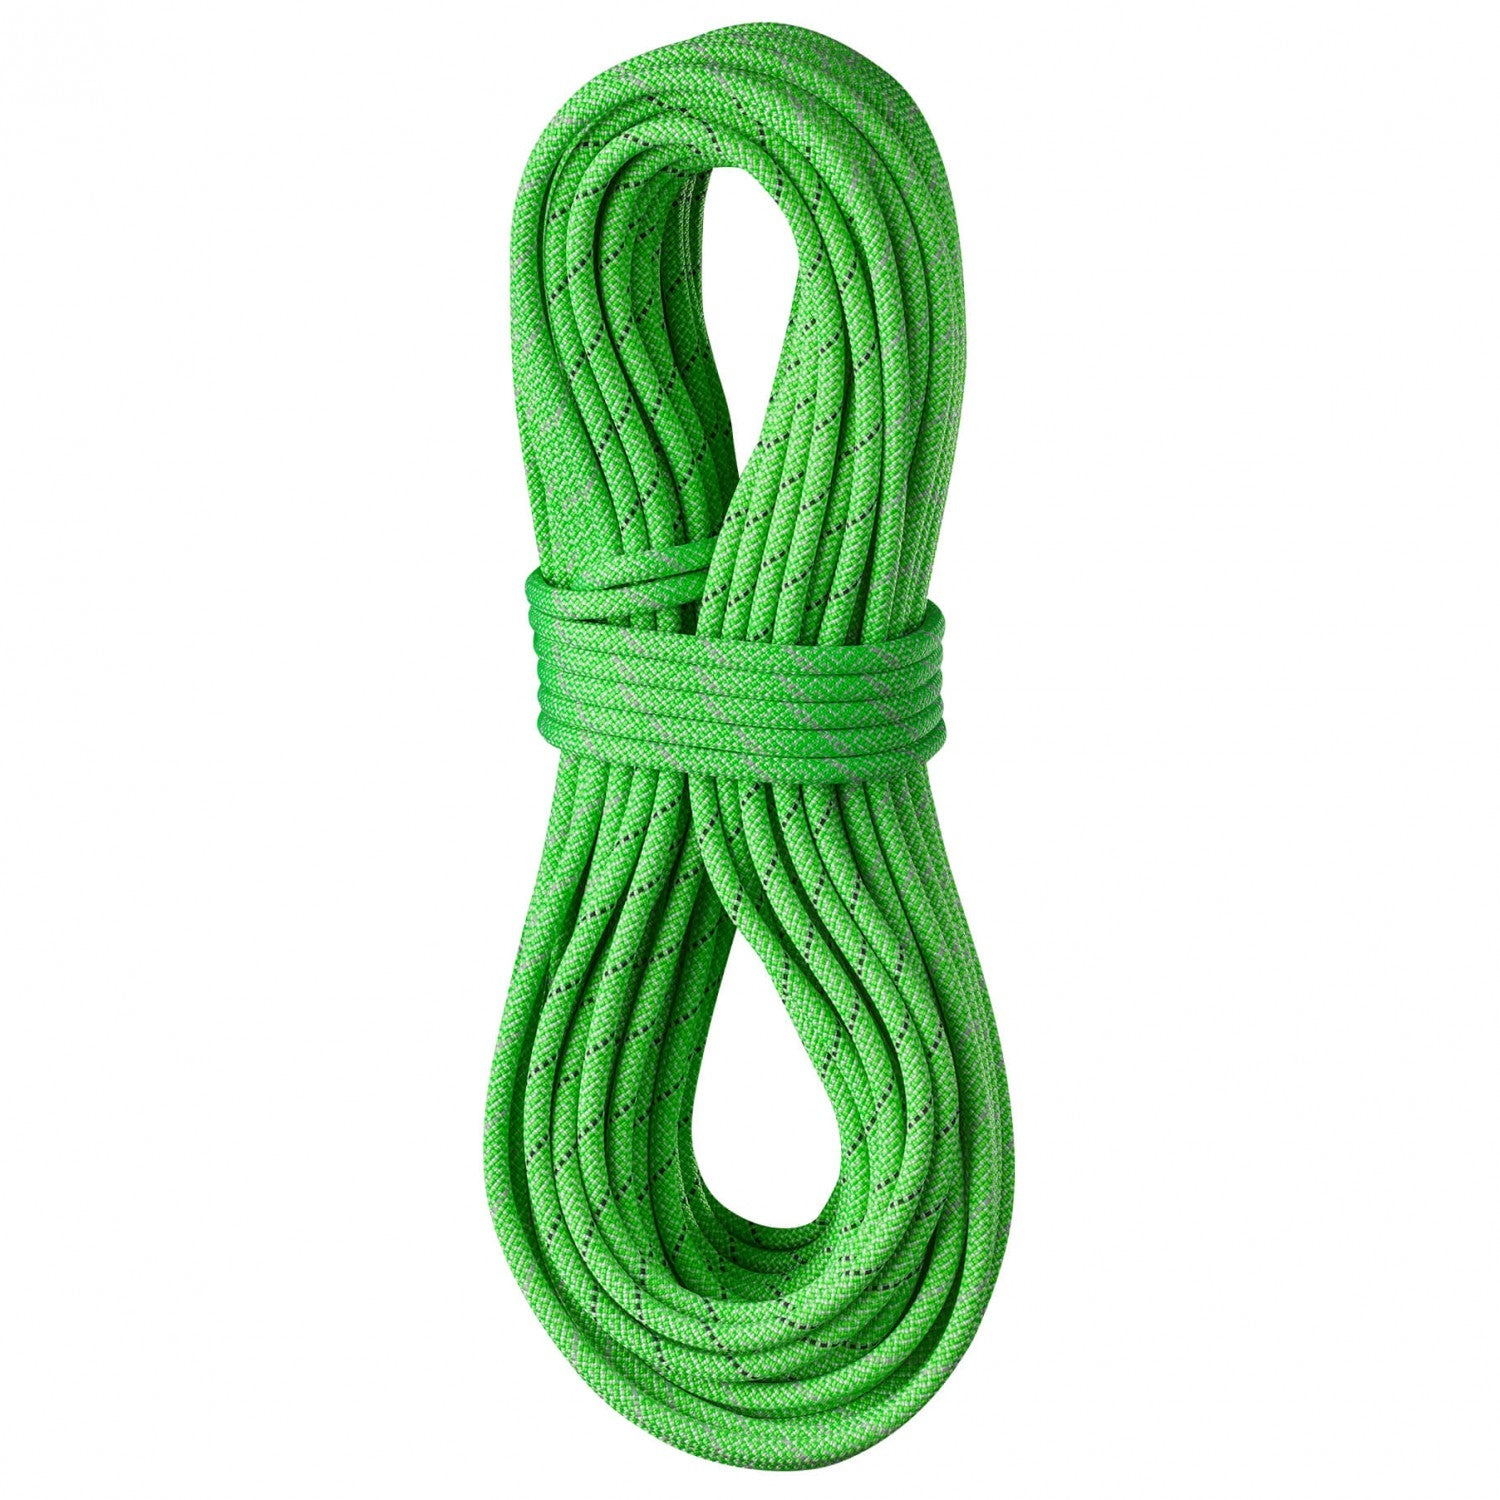 Edelrid Tommy Caldwell Pro Dry DT 9.6mm x 70m climbing rope, in Green colour